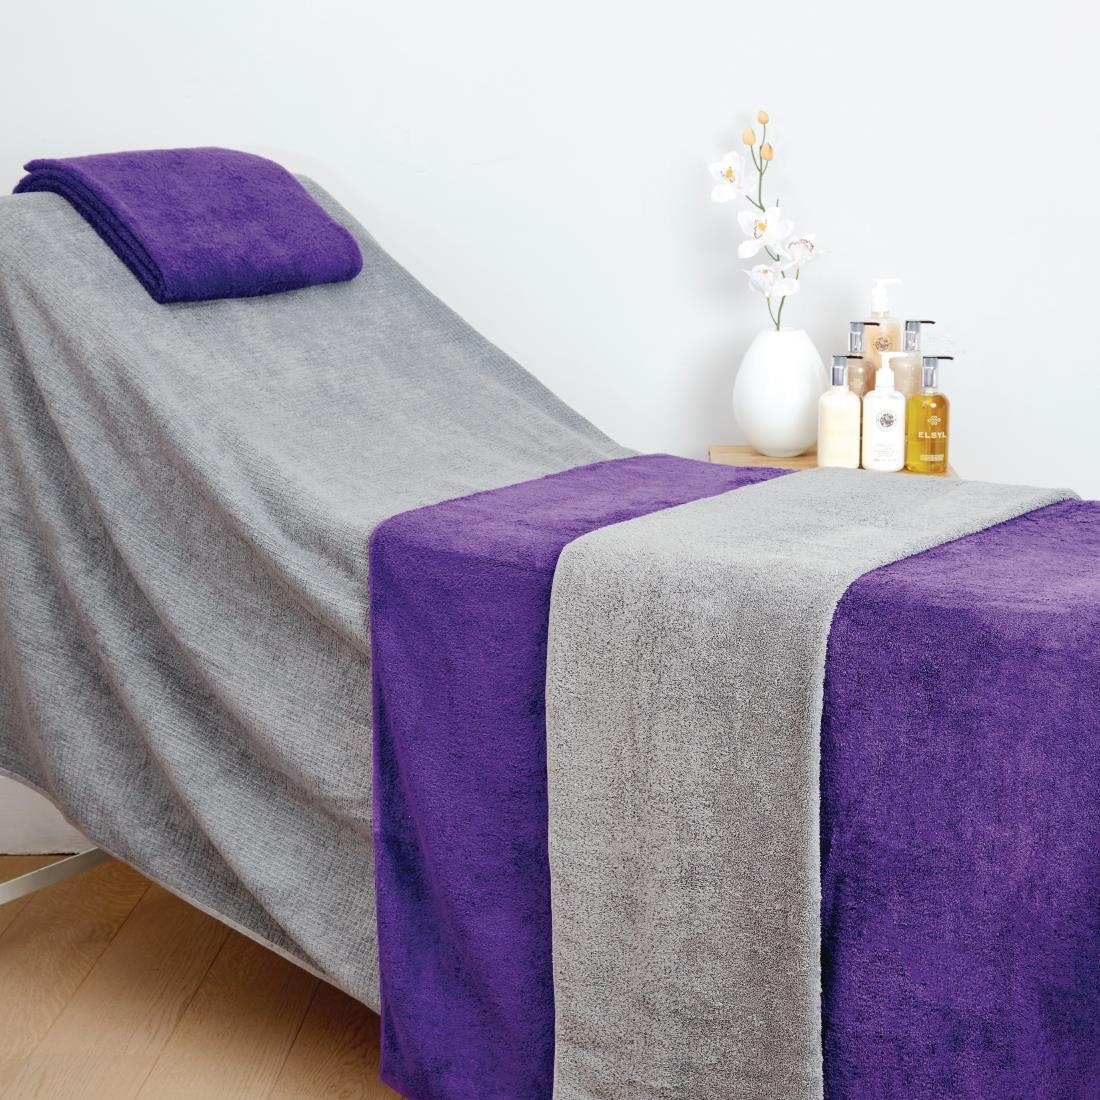 Image of Mitre Comfort Enigma Massage Couch Cover Slate